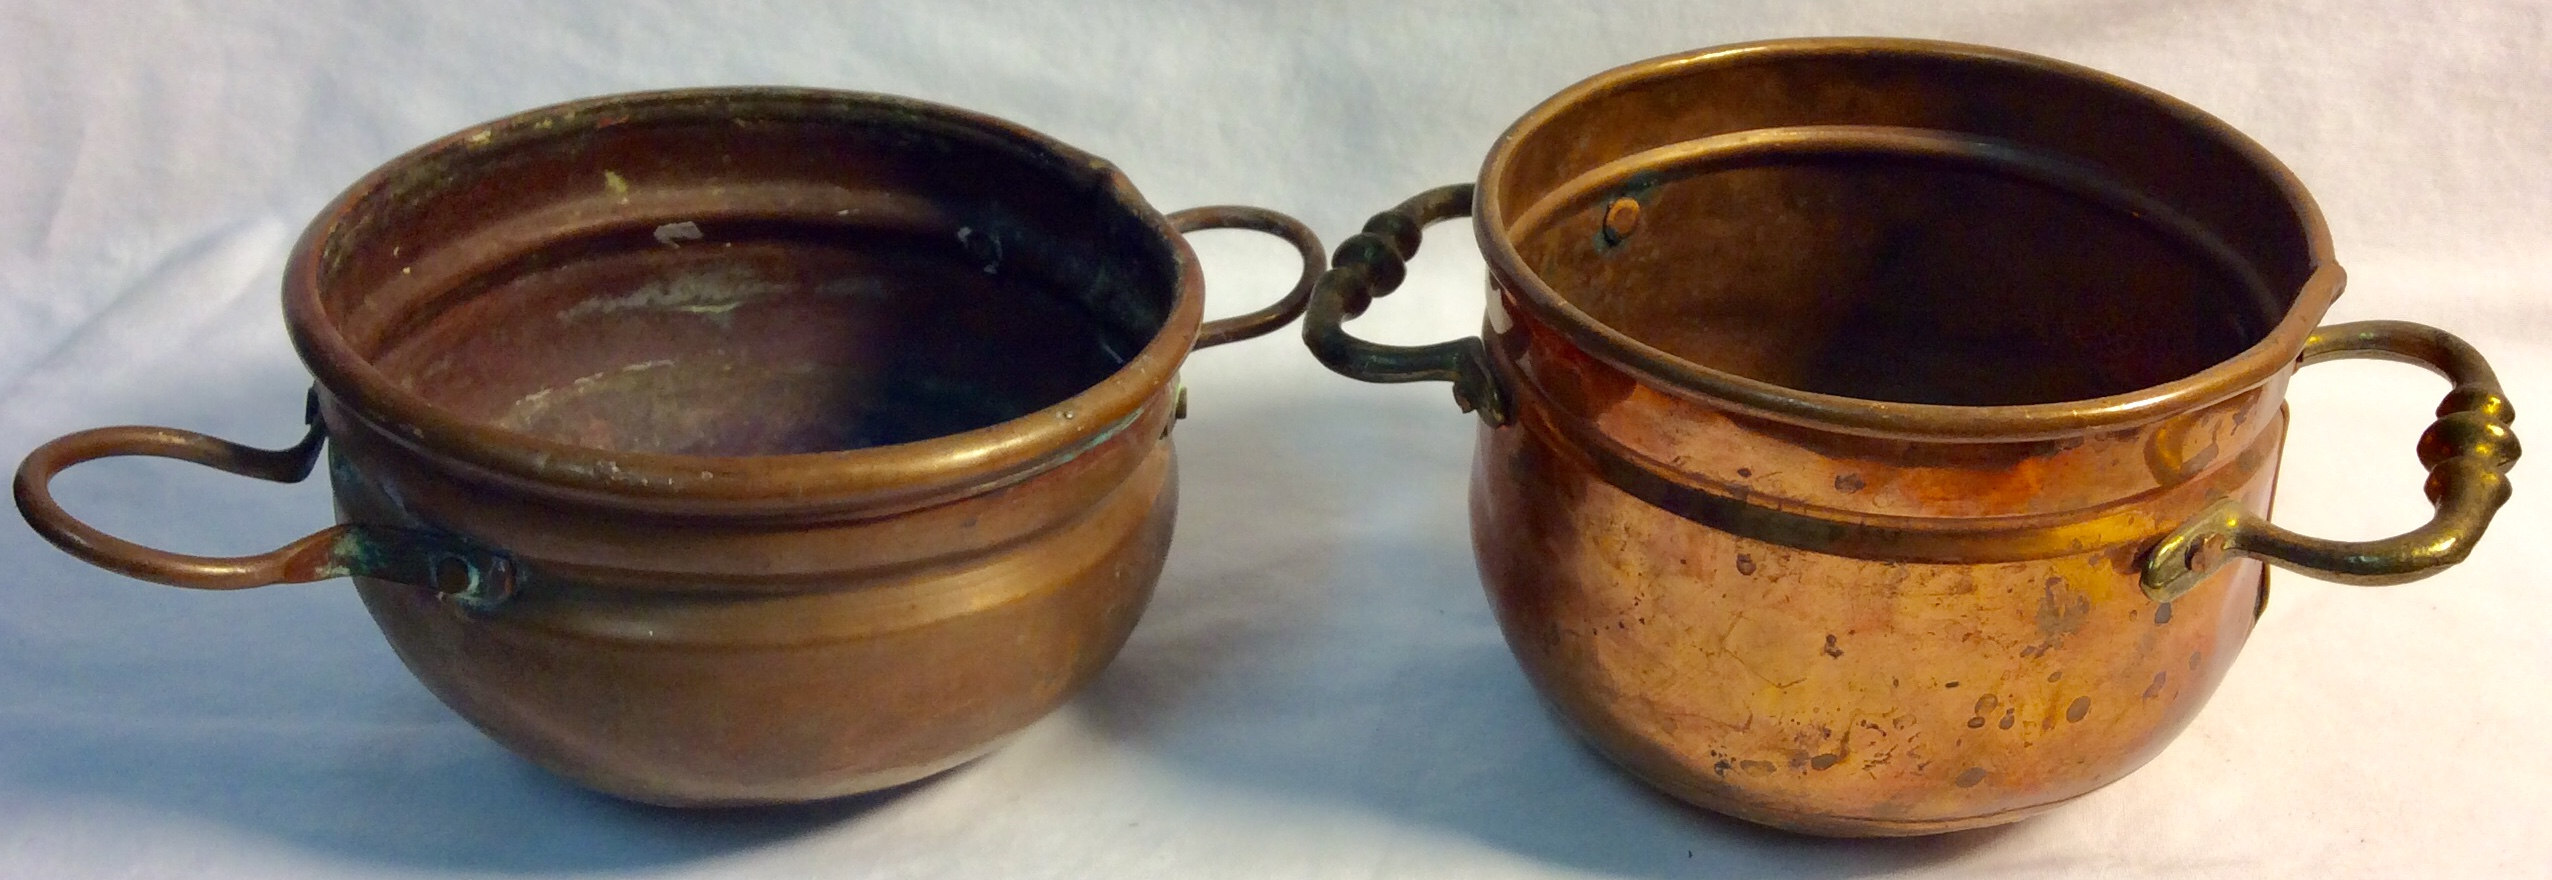 Aged copper small brass pots